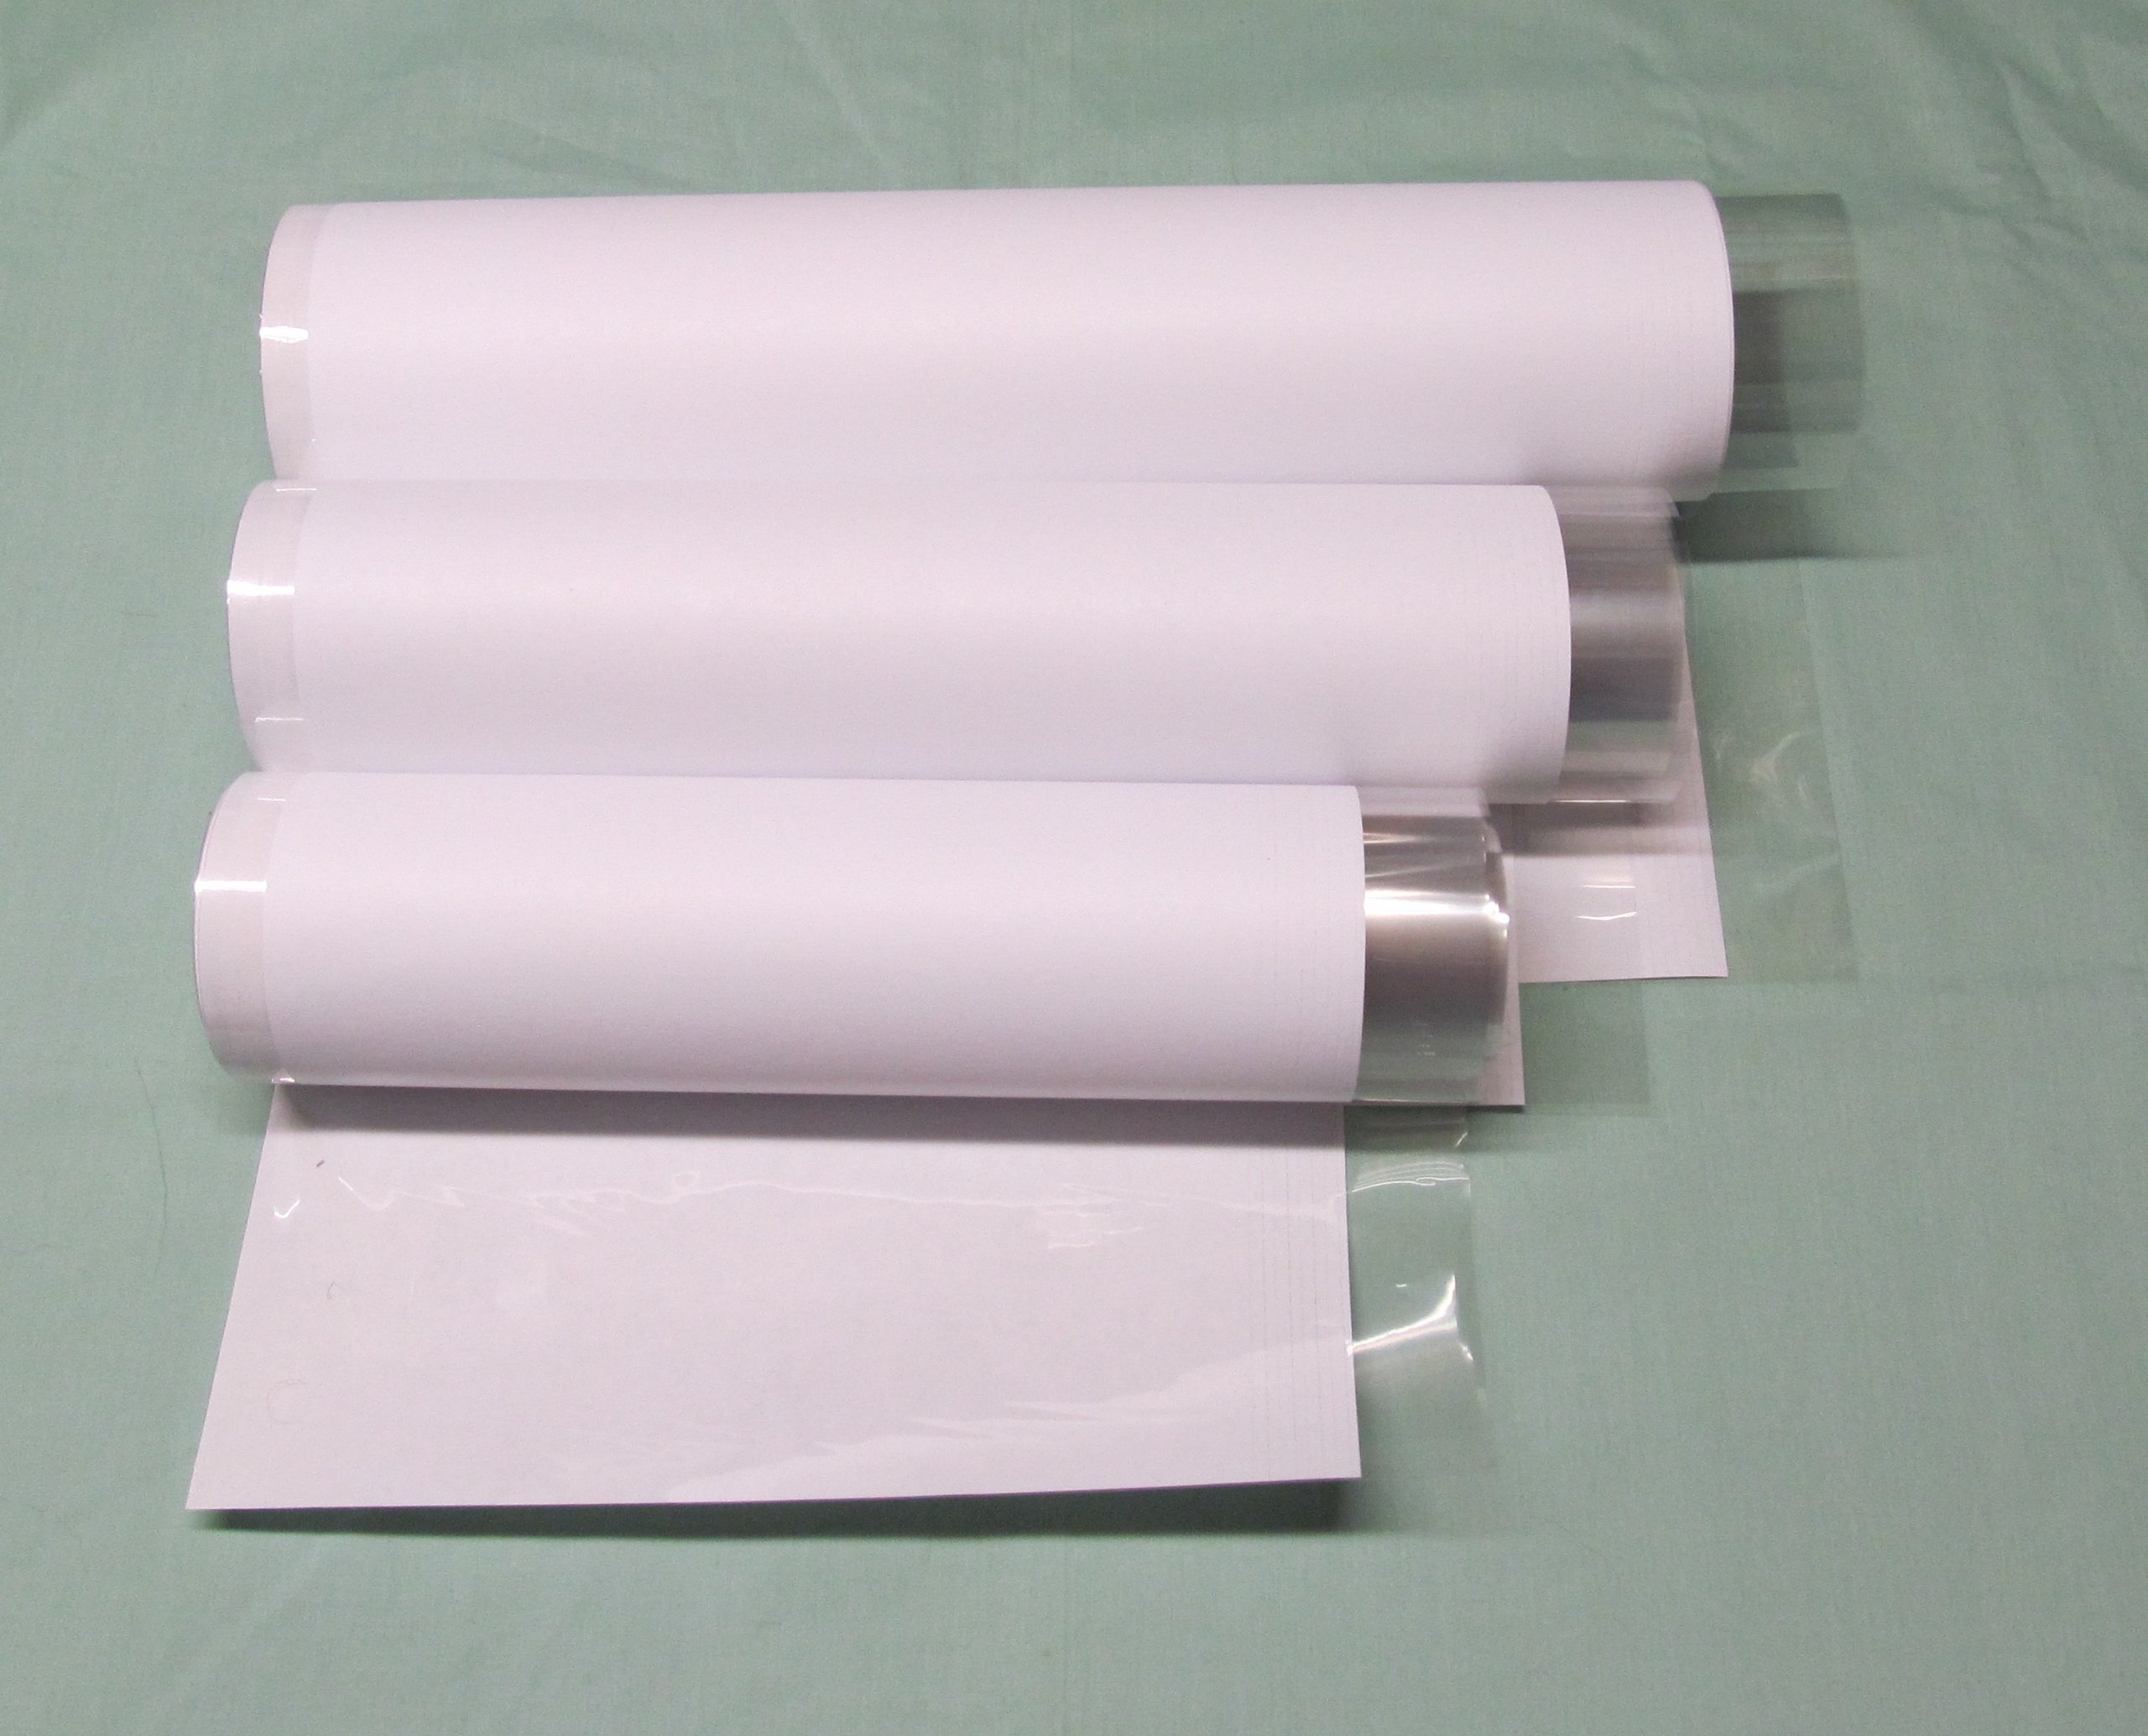 30 Yards Brodart Just-A-Fold III Archival Book Jacket Covers LARGE Roll Combo - 10, 12 & 14''